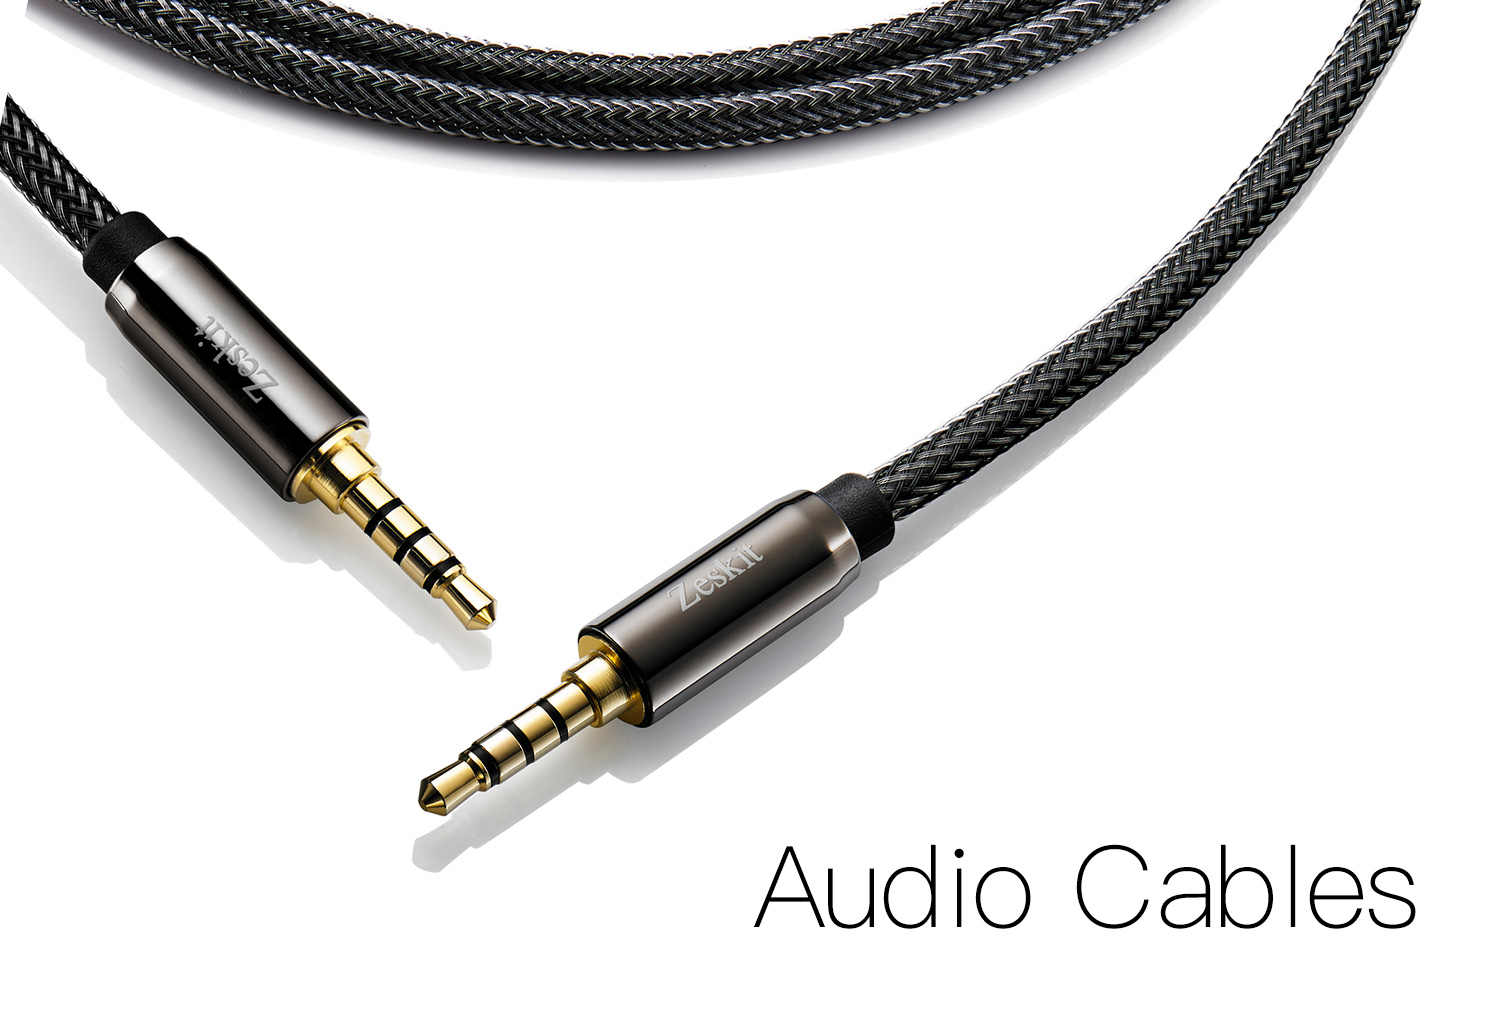 audio cables.jpg